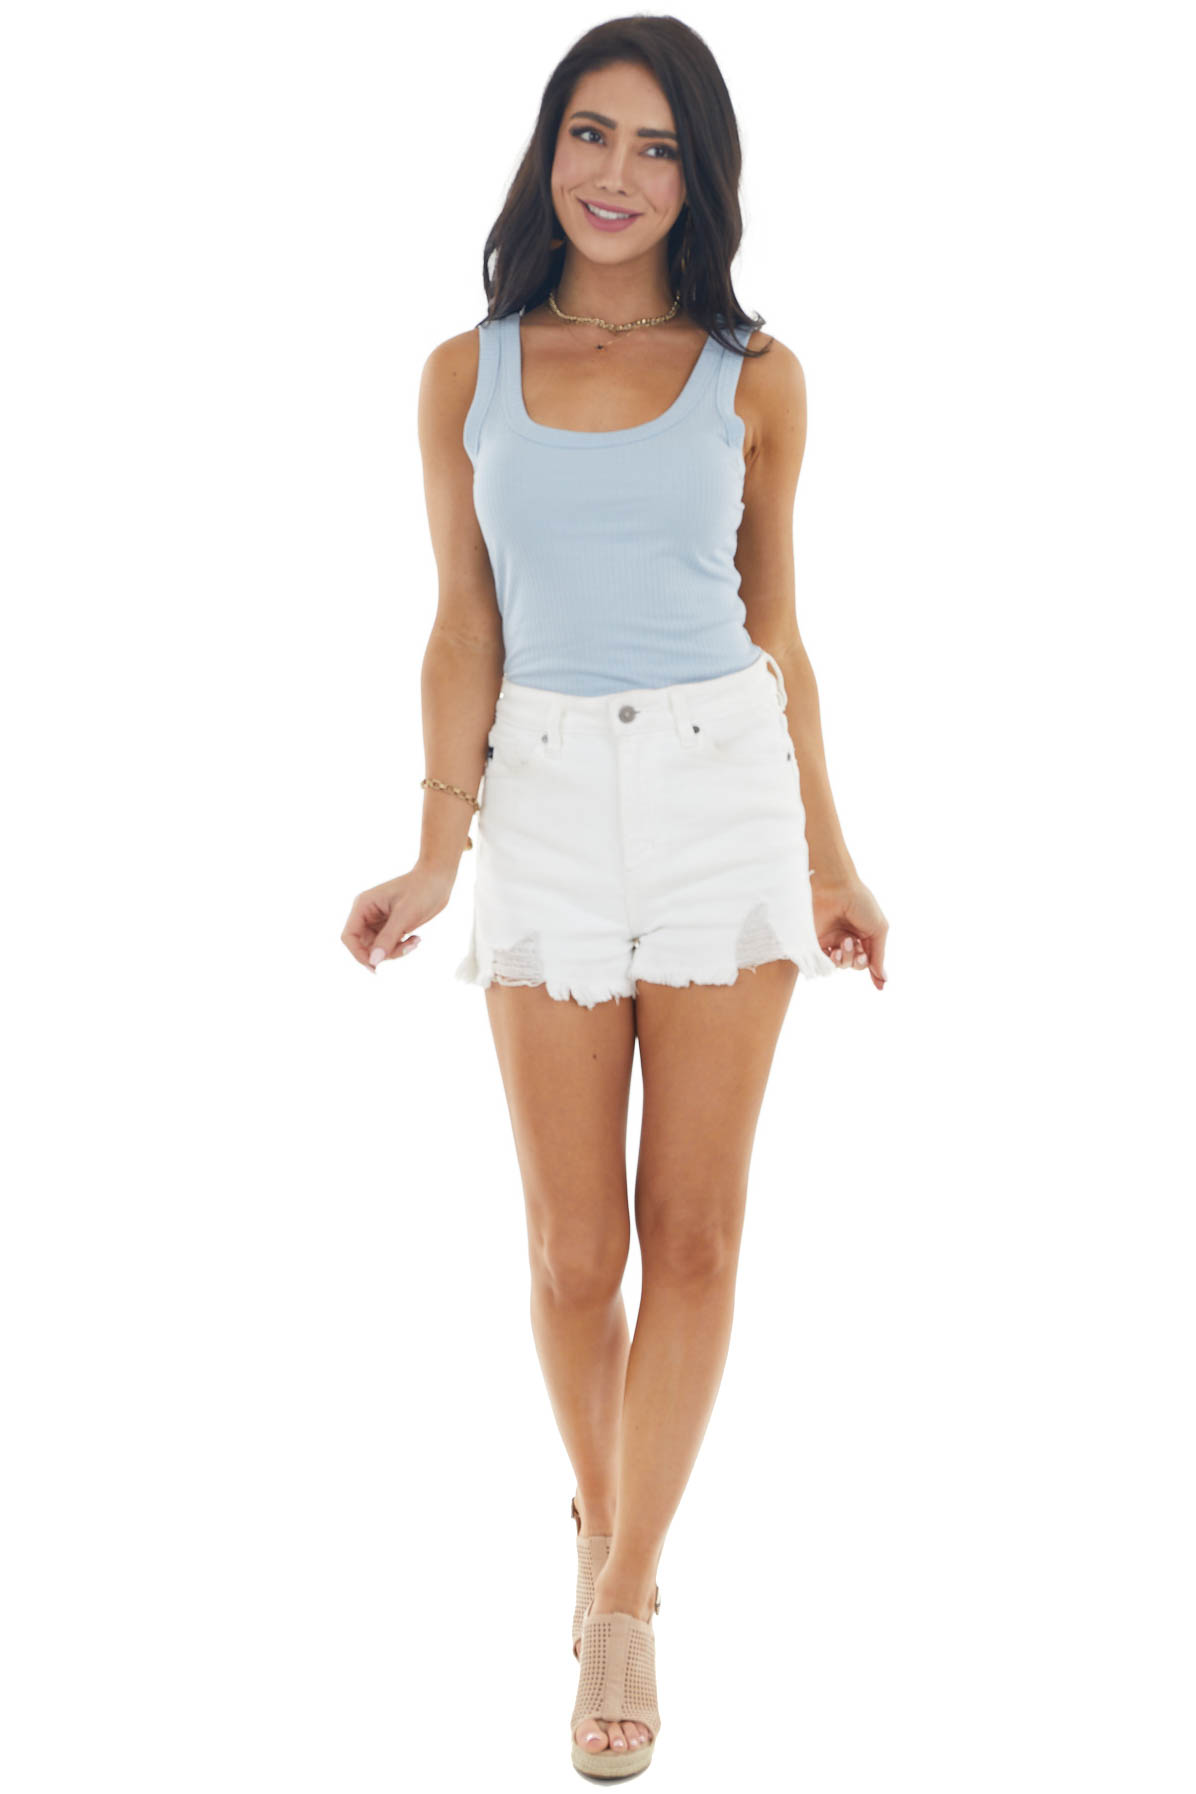 Powder Blue Stretchy Ribbed Knit Tank Top with Scoop Neck